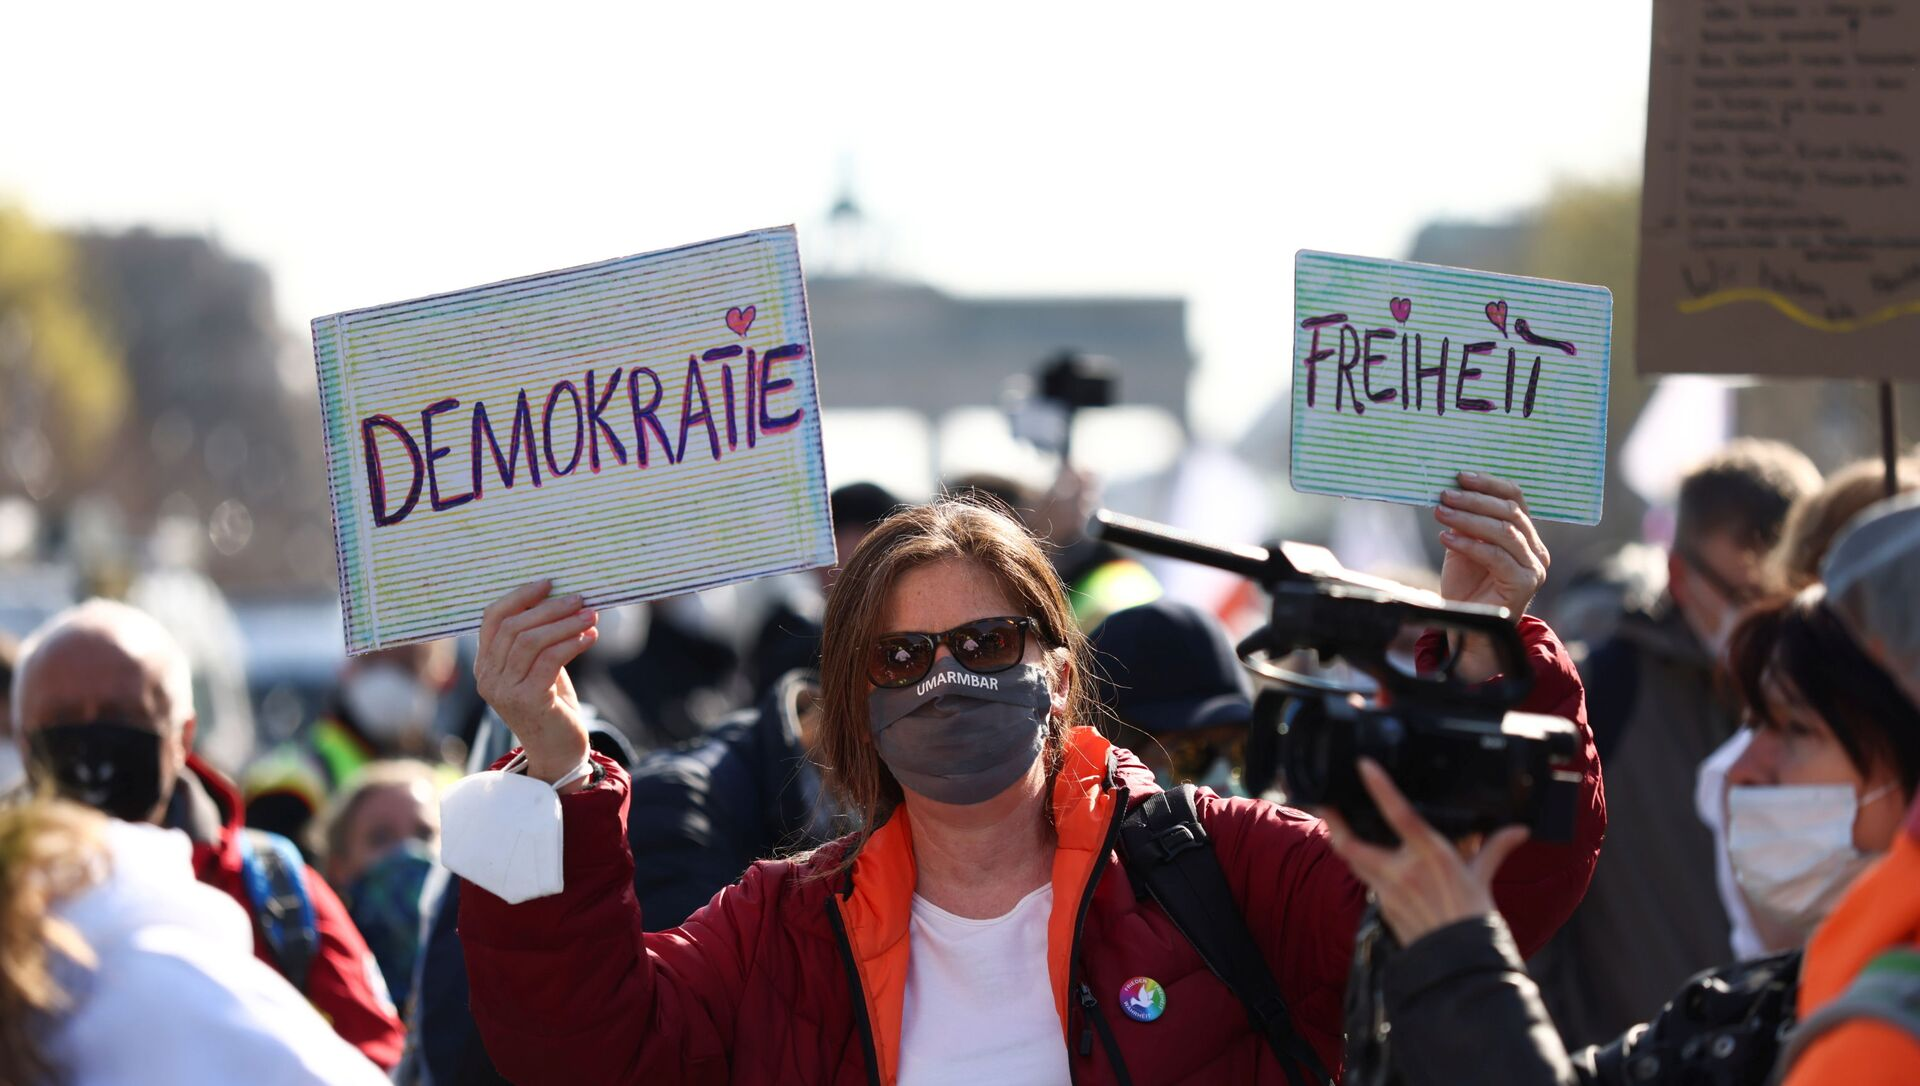 A demonstrator holds up signs reading democracy and freedom during a protest against the government measures to curb the spread of the coronavirus disease (COVID-19), on the day of discussion in the lower house of parliament Bundestag regarding additions for the Infection Protection Act, in Berlin, Germany April 21, 2021 - Sputnik International, 1920, 01.08.2021